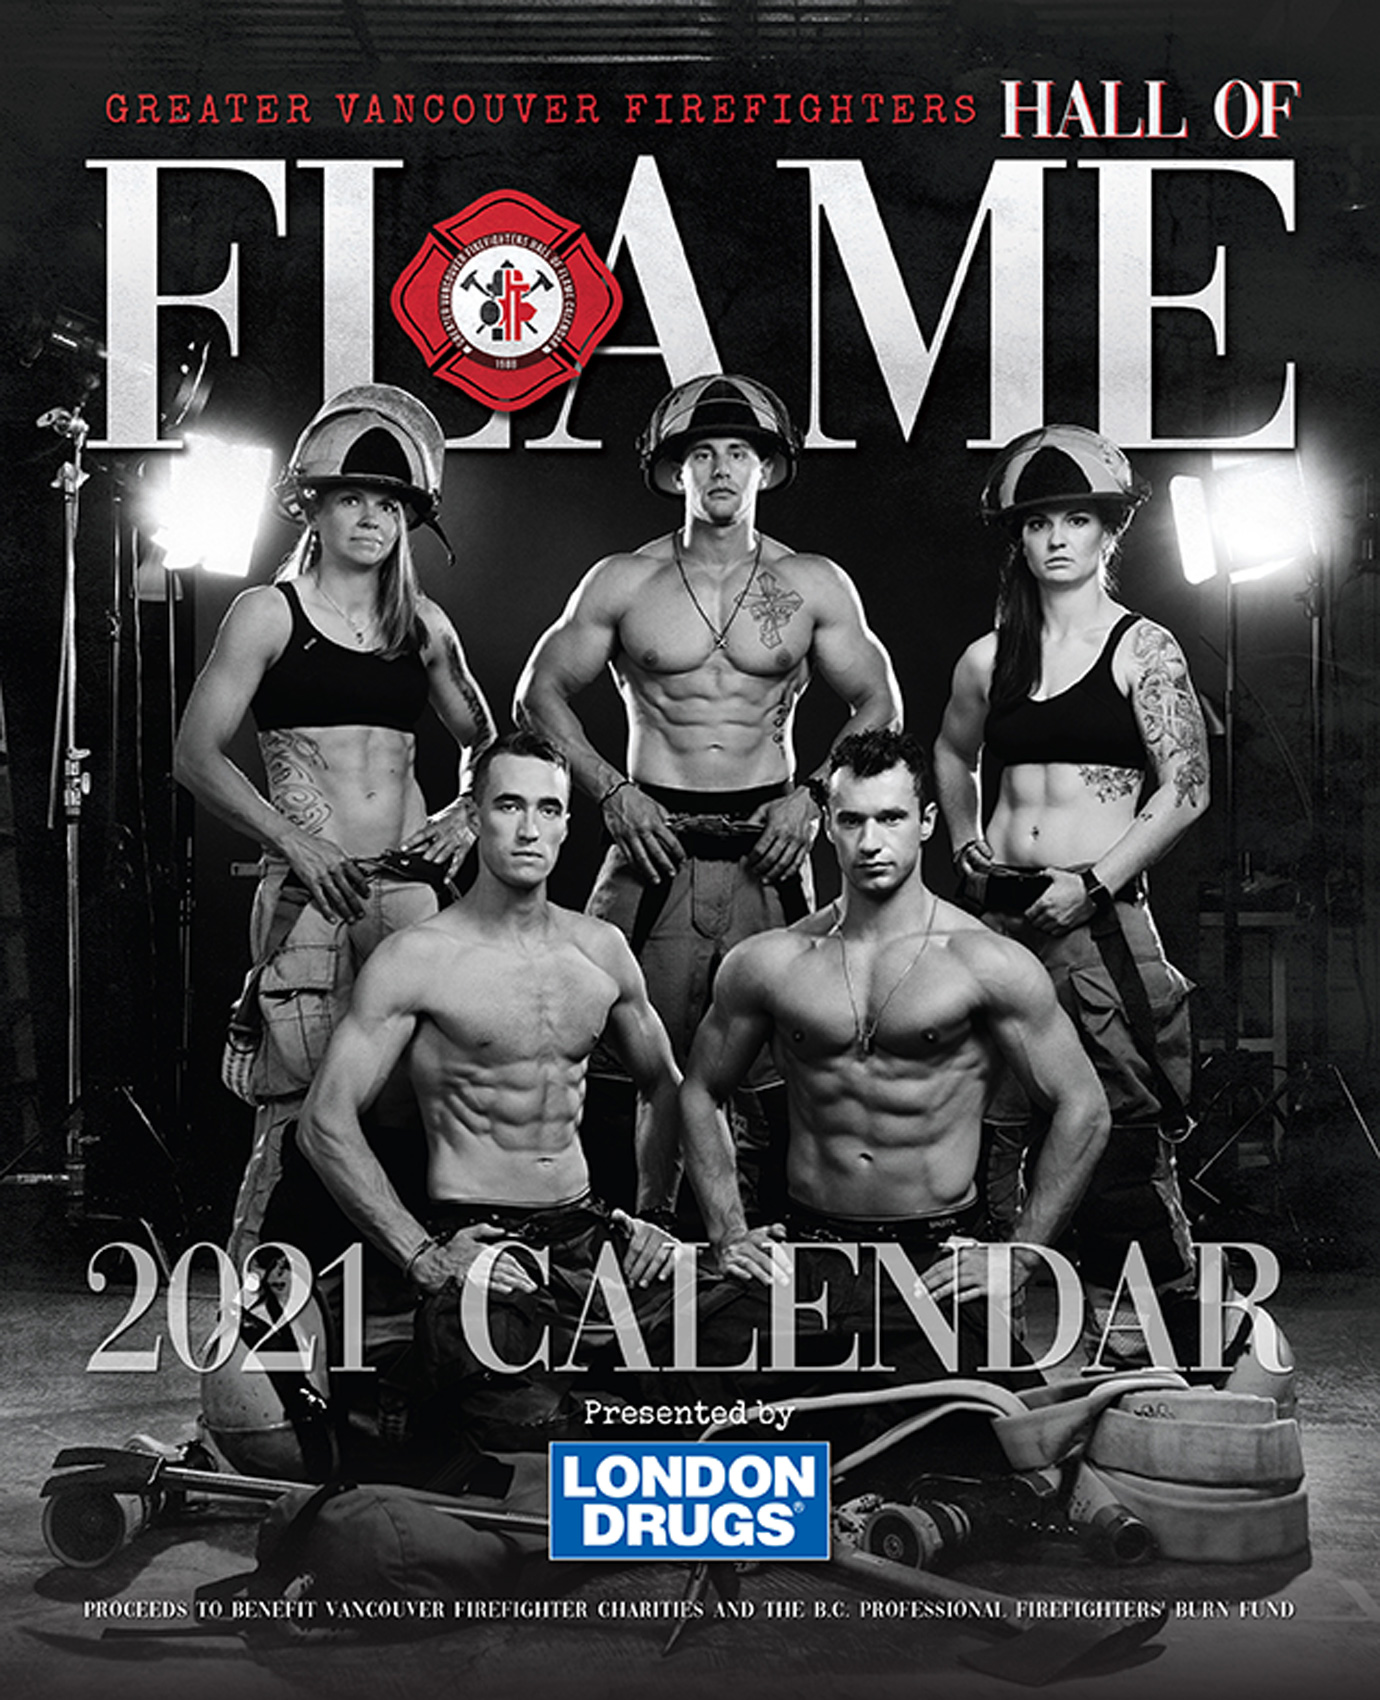 HOF-Hall-of-Flame-Calender-Erich-Saide-Vancouver-Portrait-Photographer-Firefighters-Hot-Heros-First-Responders-Cover